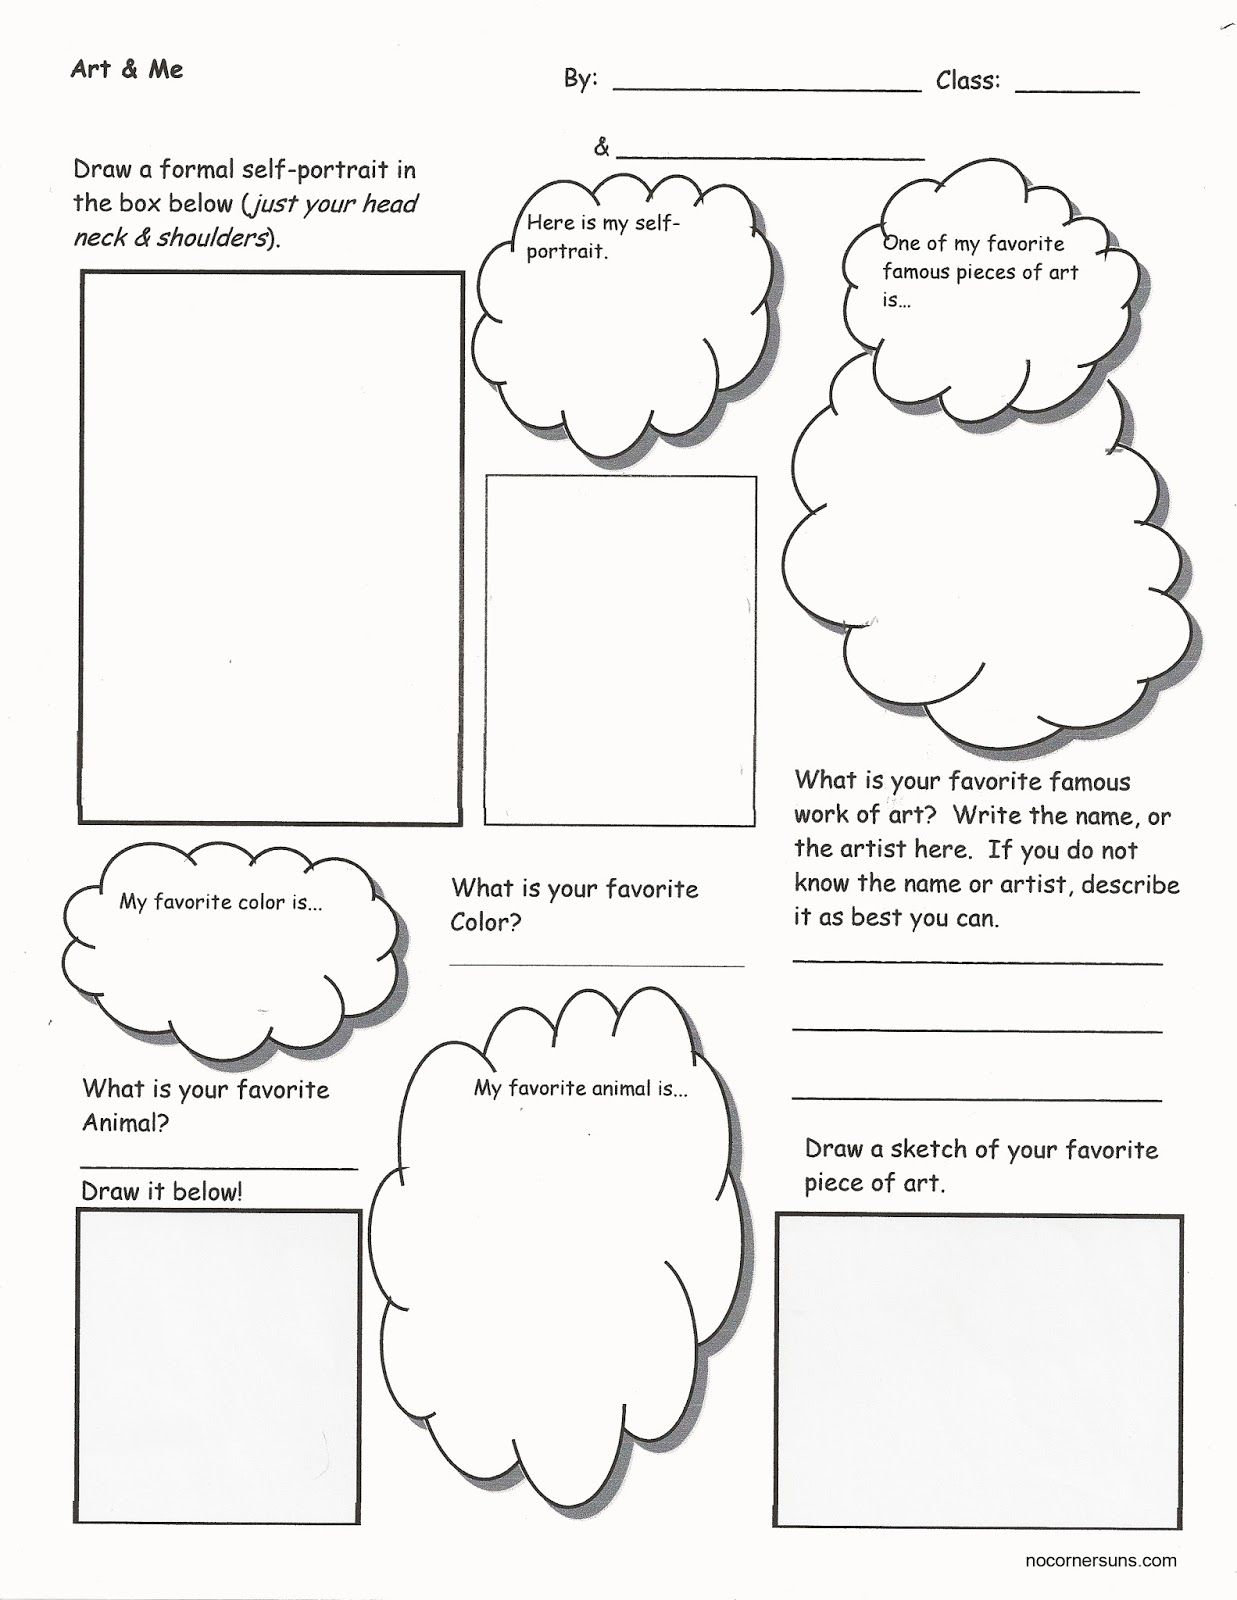 No Corner Suns Art Amp Me Get To Know Your Students While They Get To Know You Worksheet